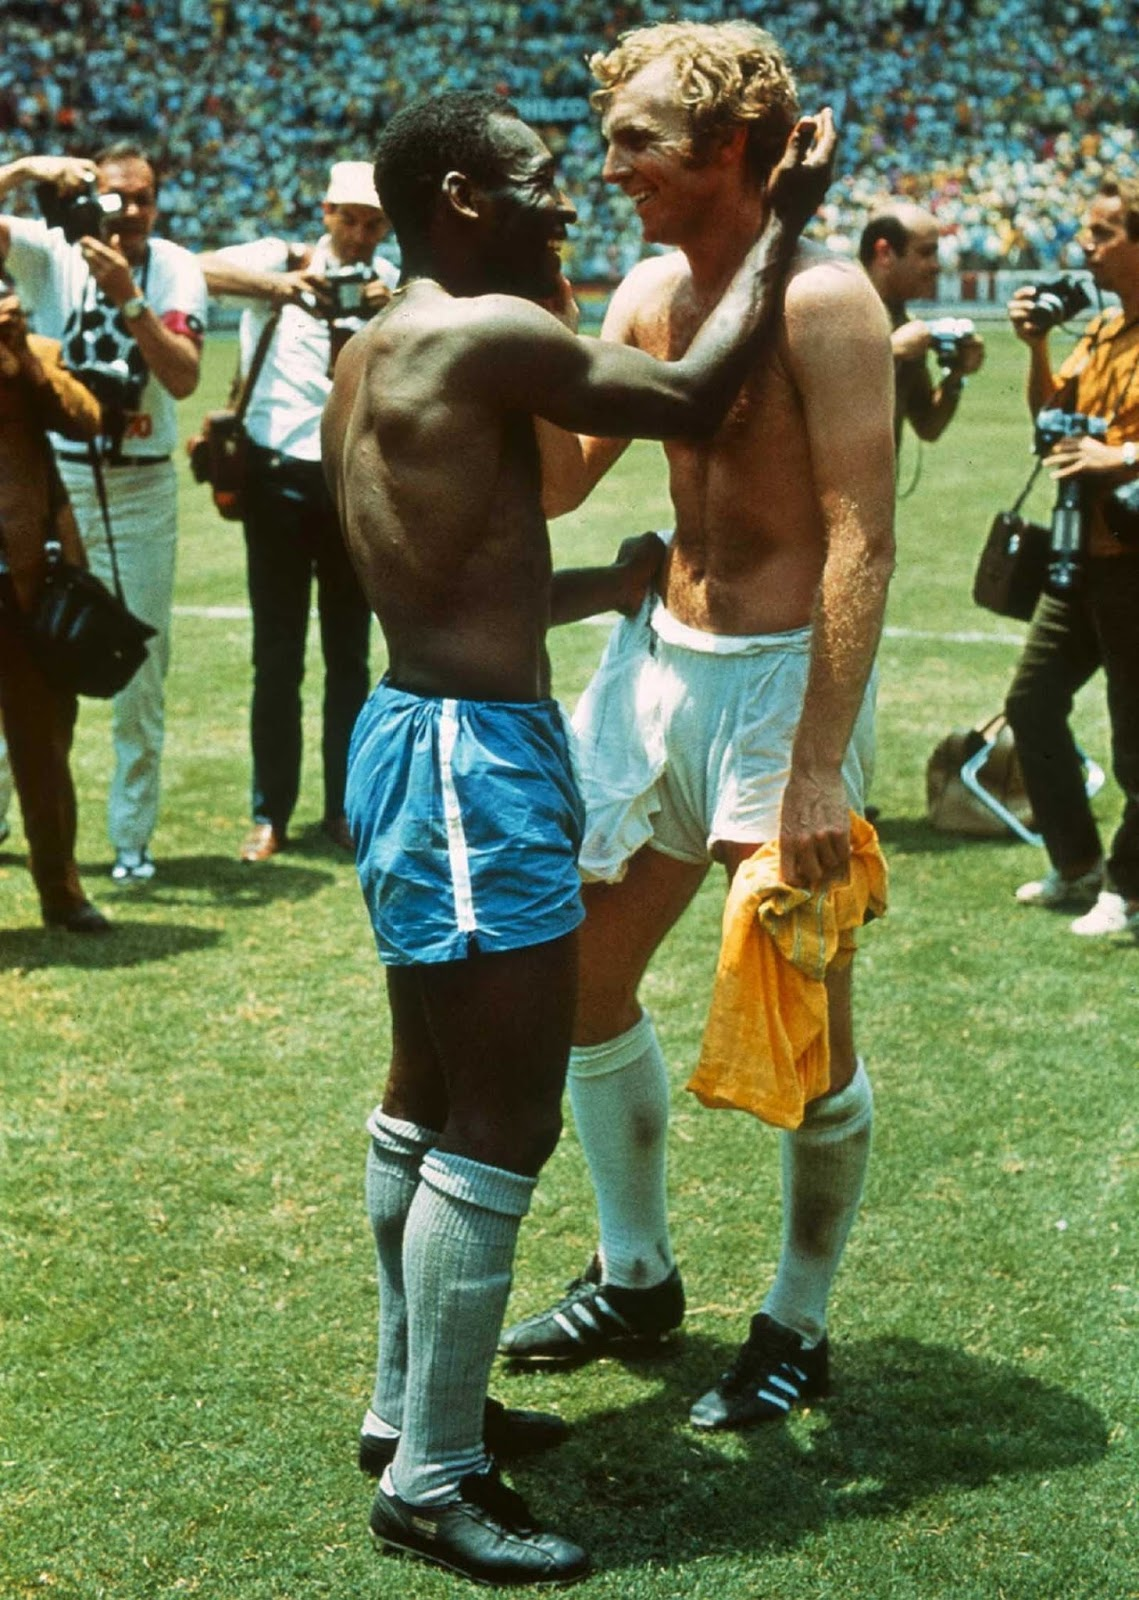 Pele and Bobby Moore swapping jerseys after Brazil defeated